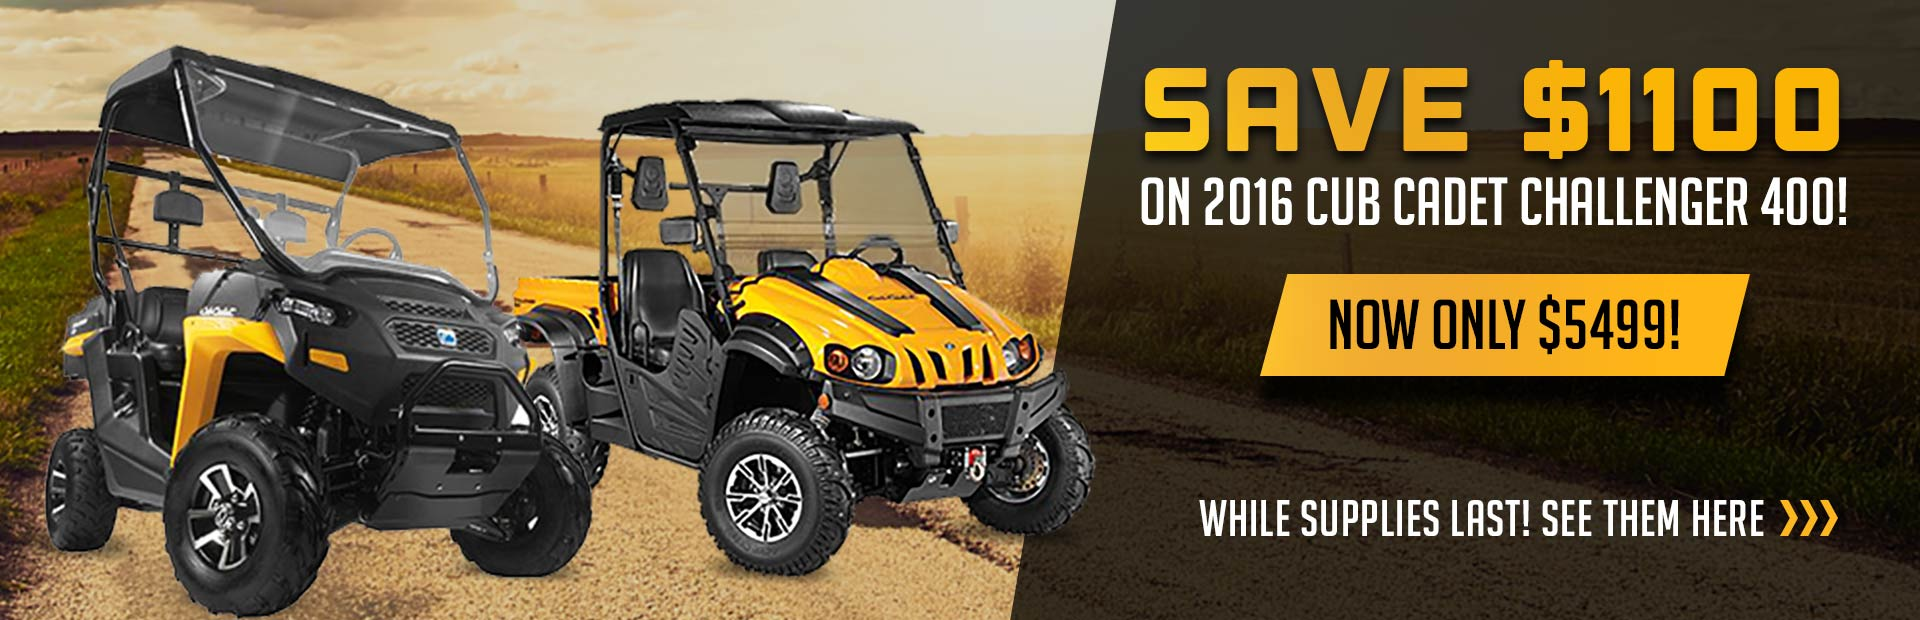 Save $1100 on 2016 Cub Cadet Challengers 400. Now Only $5499! While supplies last! See them here.